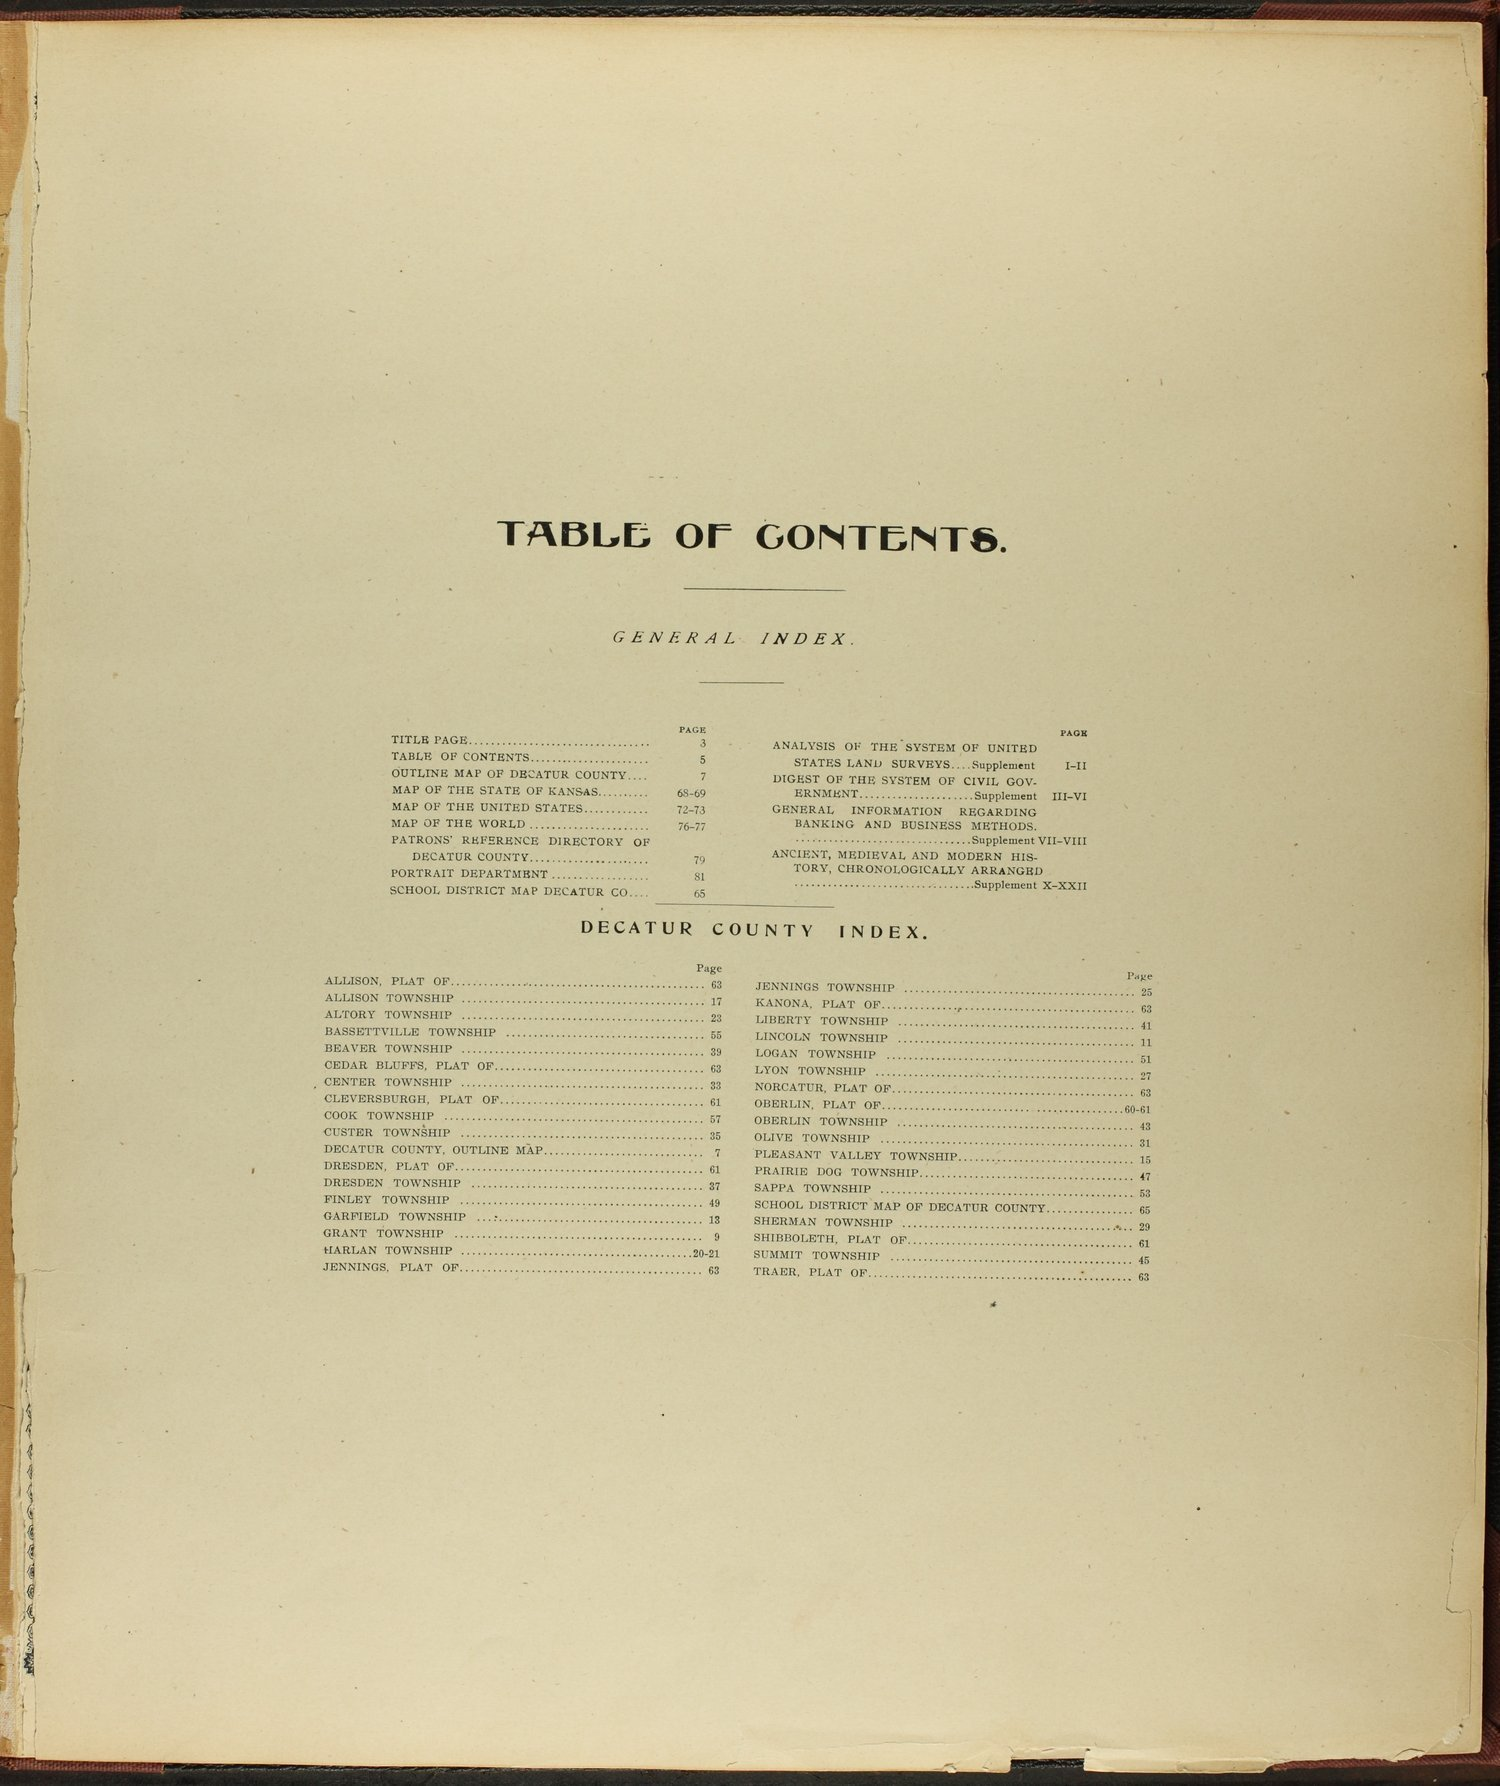 Standard atlas of Decatur County, Kansas - Table of Contents